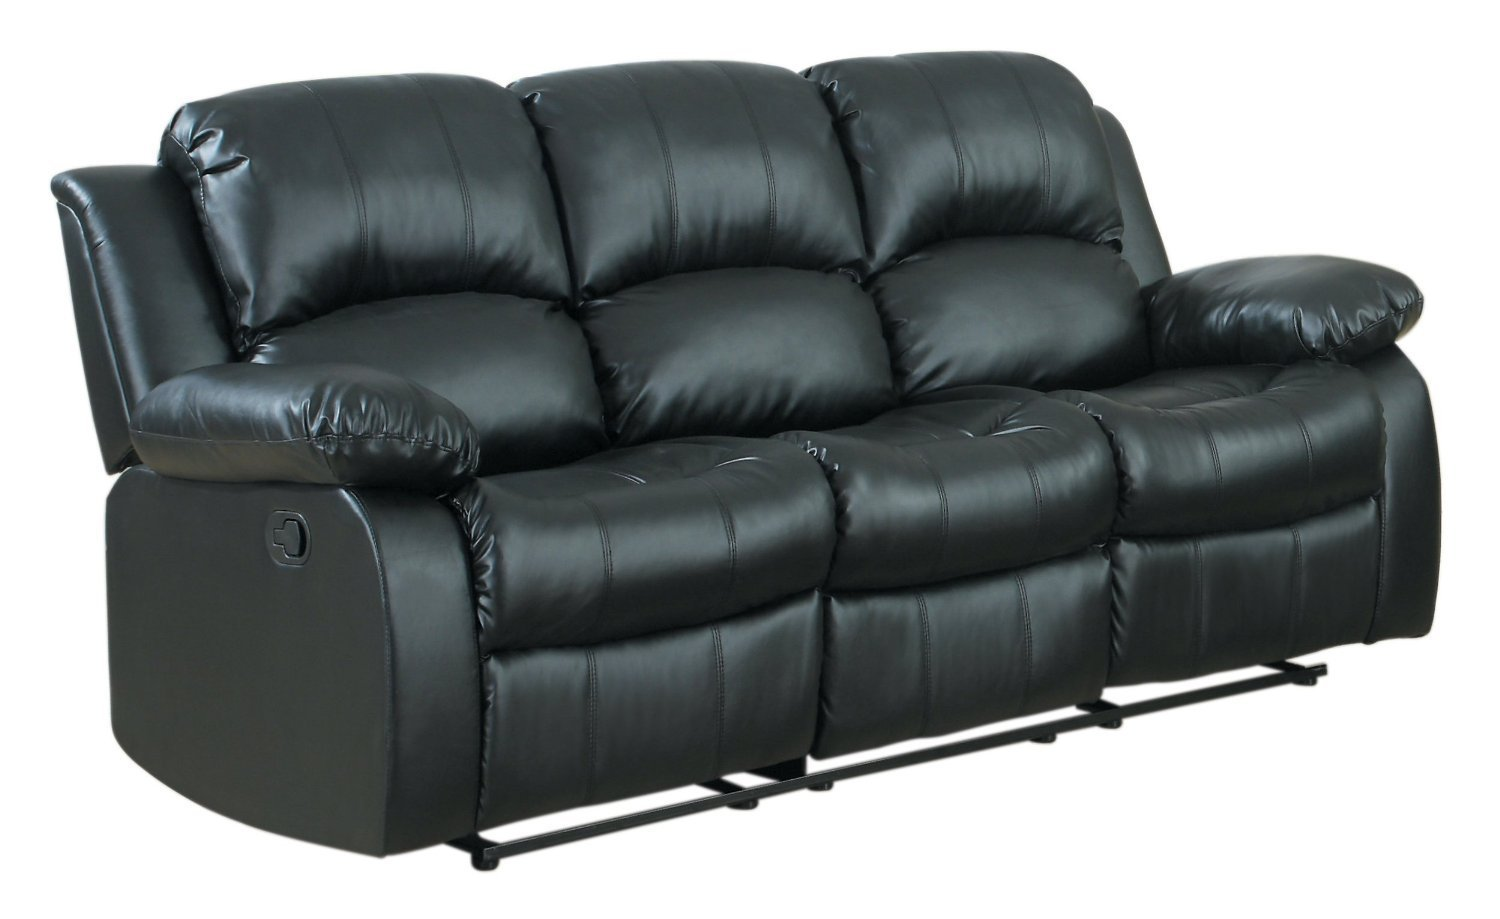 3 seat Sofa Double Recliner Black / Brown Bonded Leather (Black)